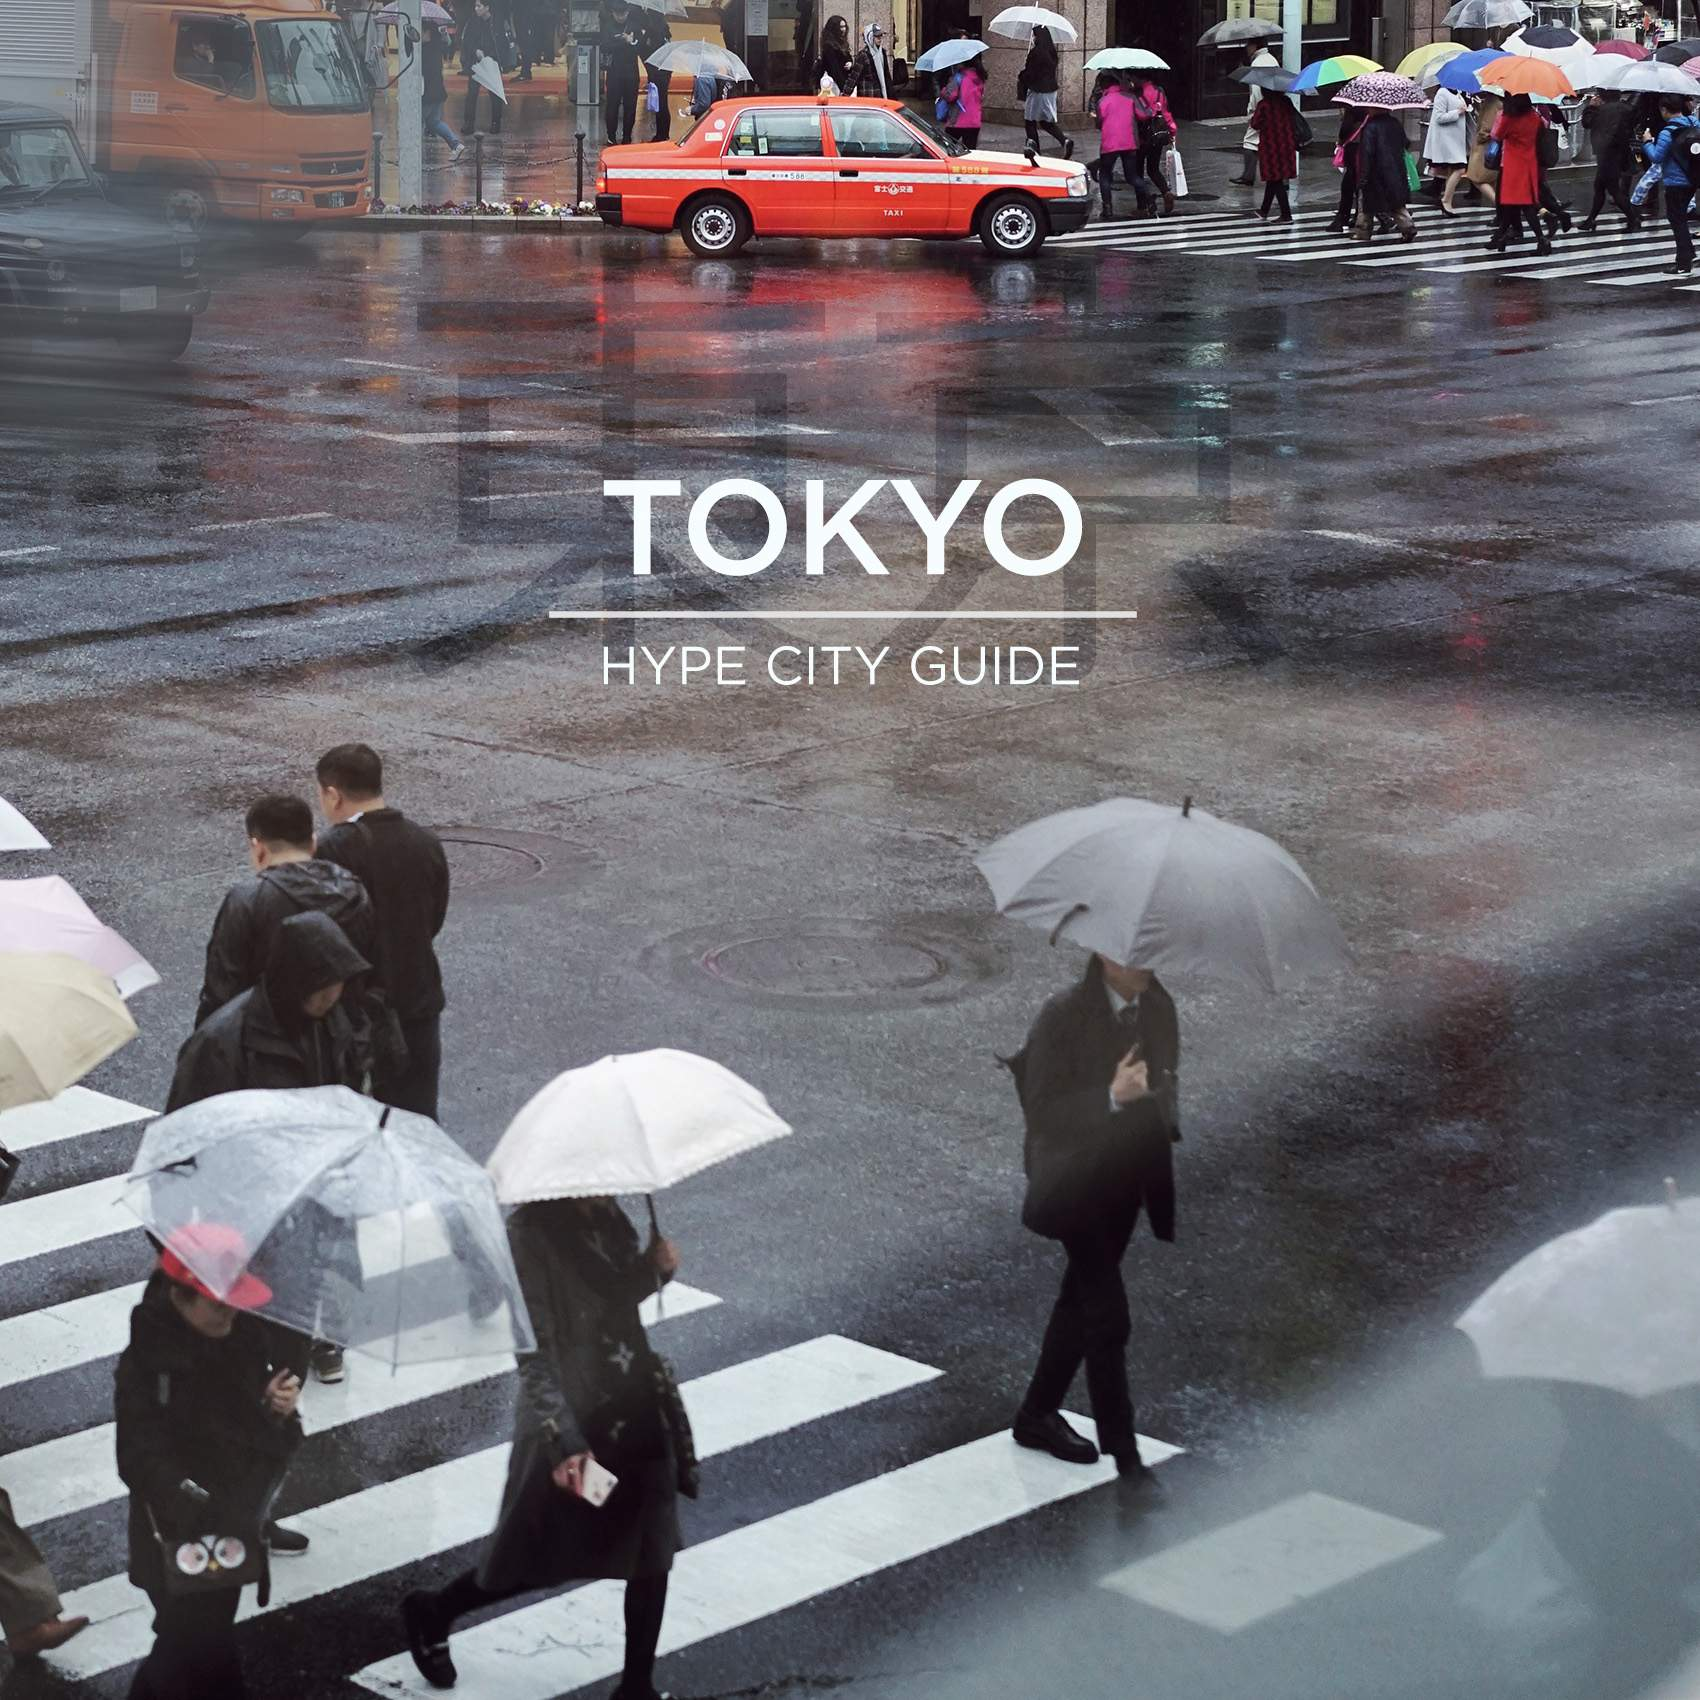 TOKYO-hype-city-guide-2017-blog-voyage